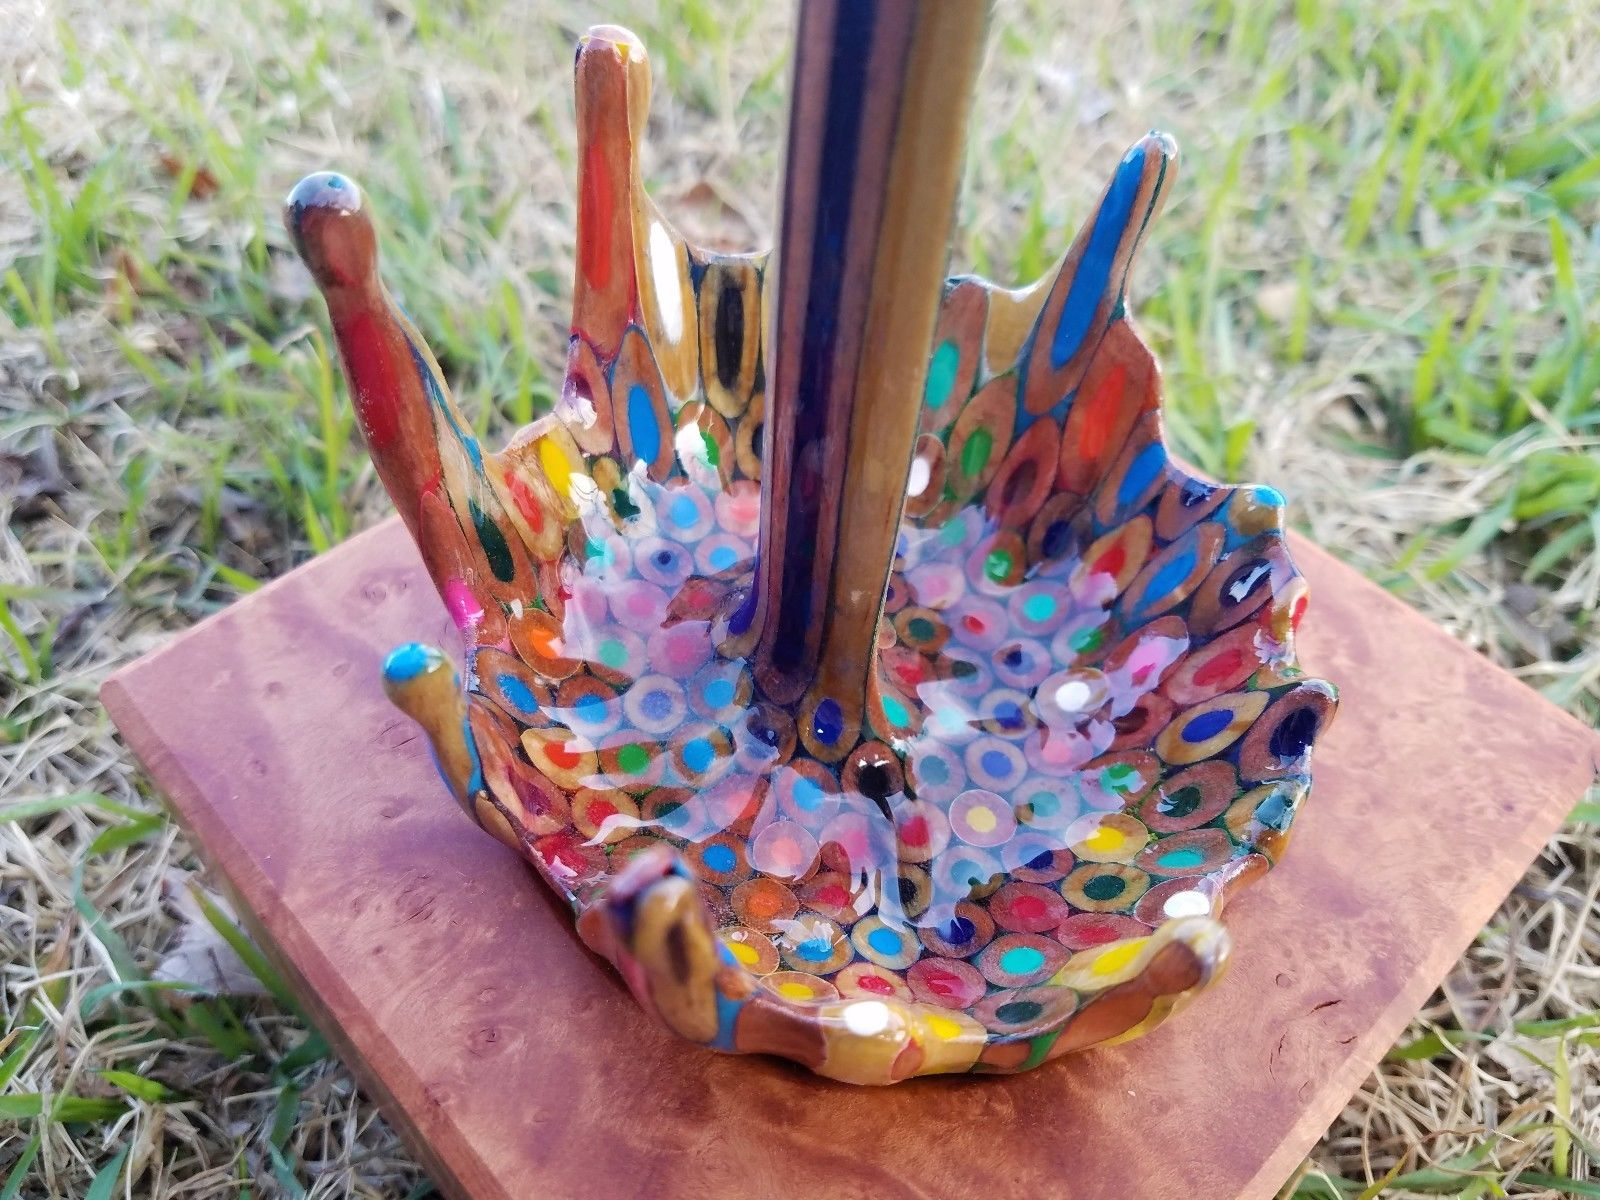 A Floating Coffee Cup Pours a Rainbow of Liquid Pencils Artes & contextos cup 4